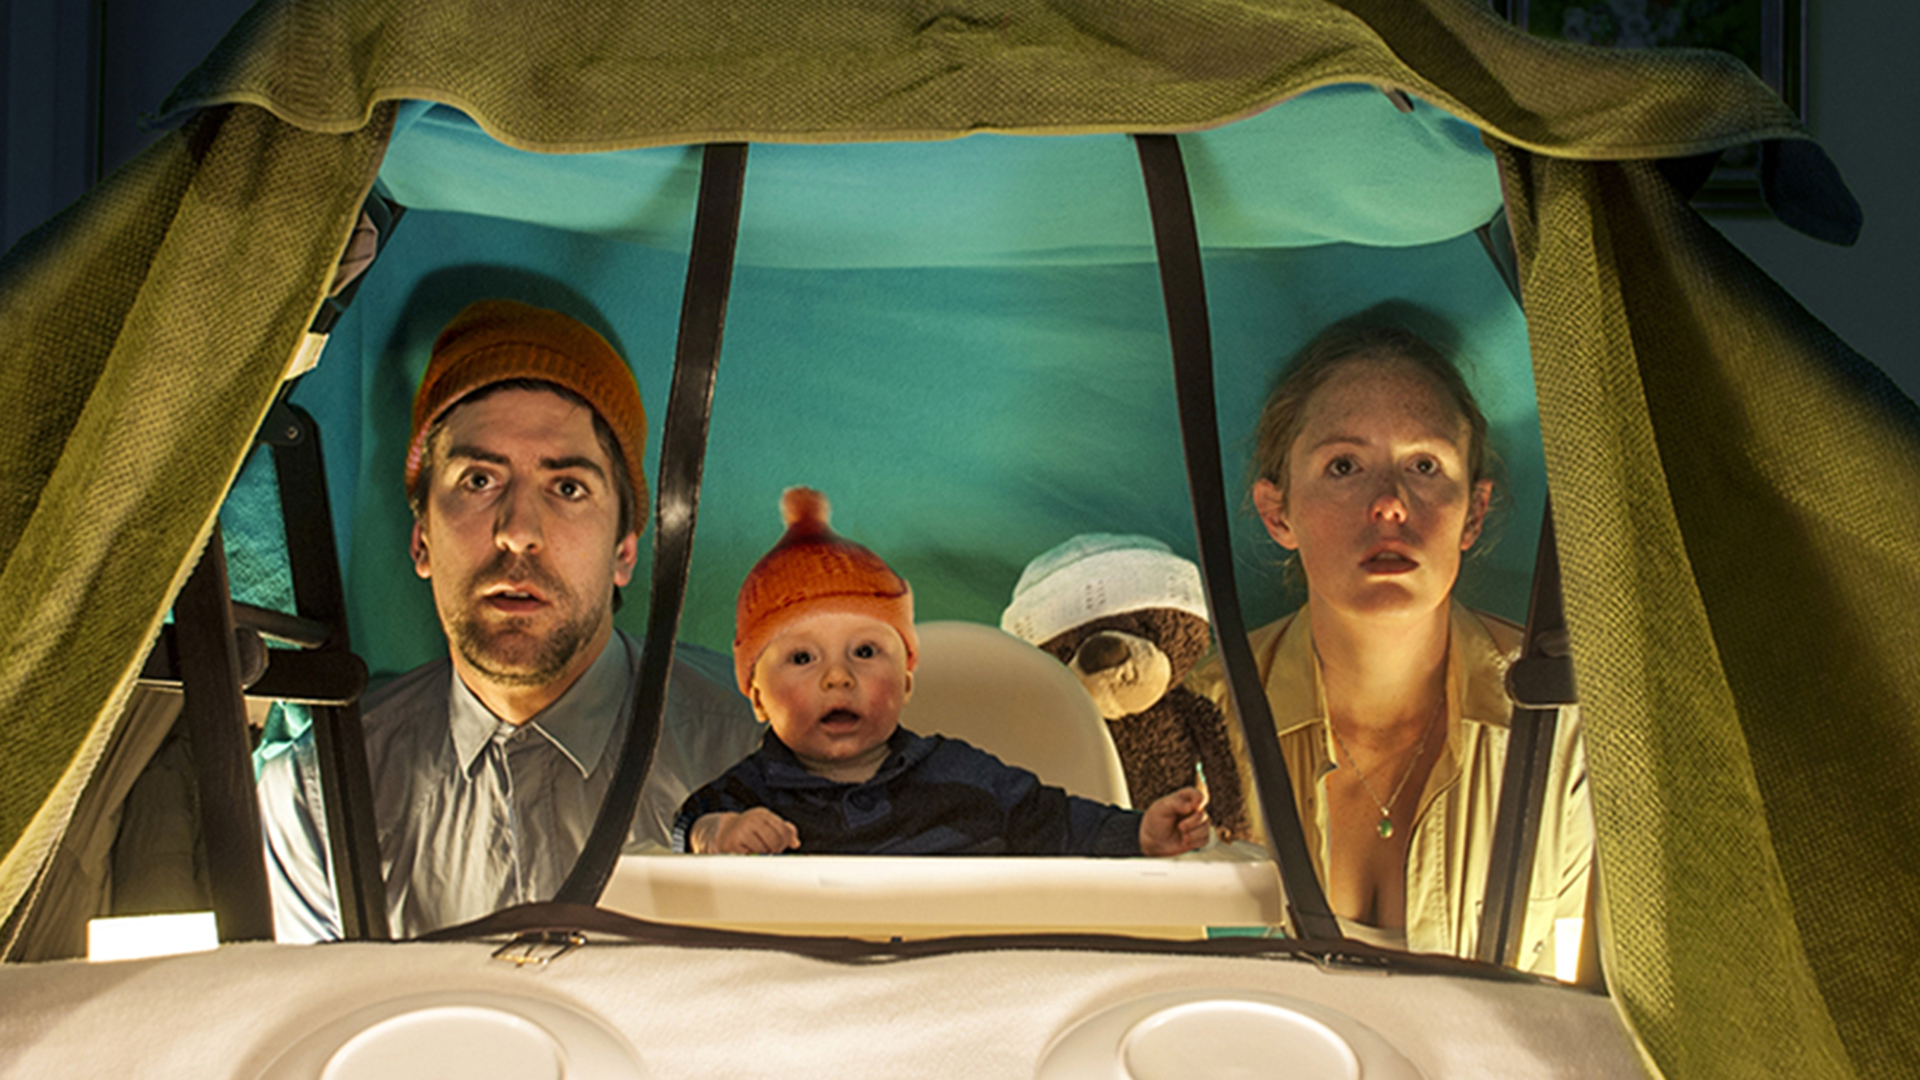 parents recreate famous movie scenes with baby todaycom